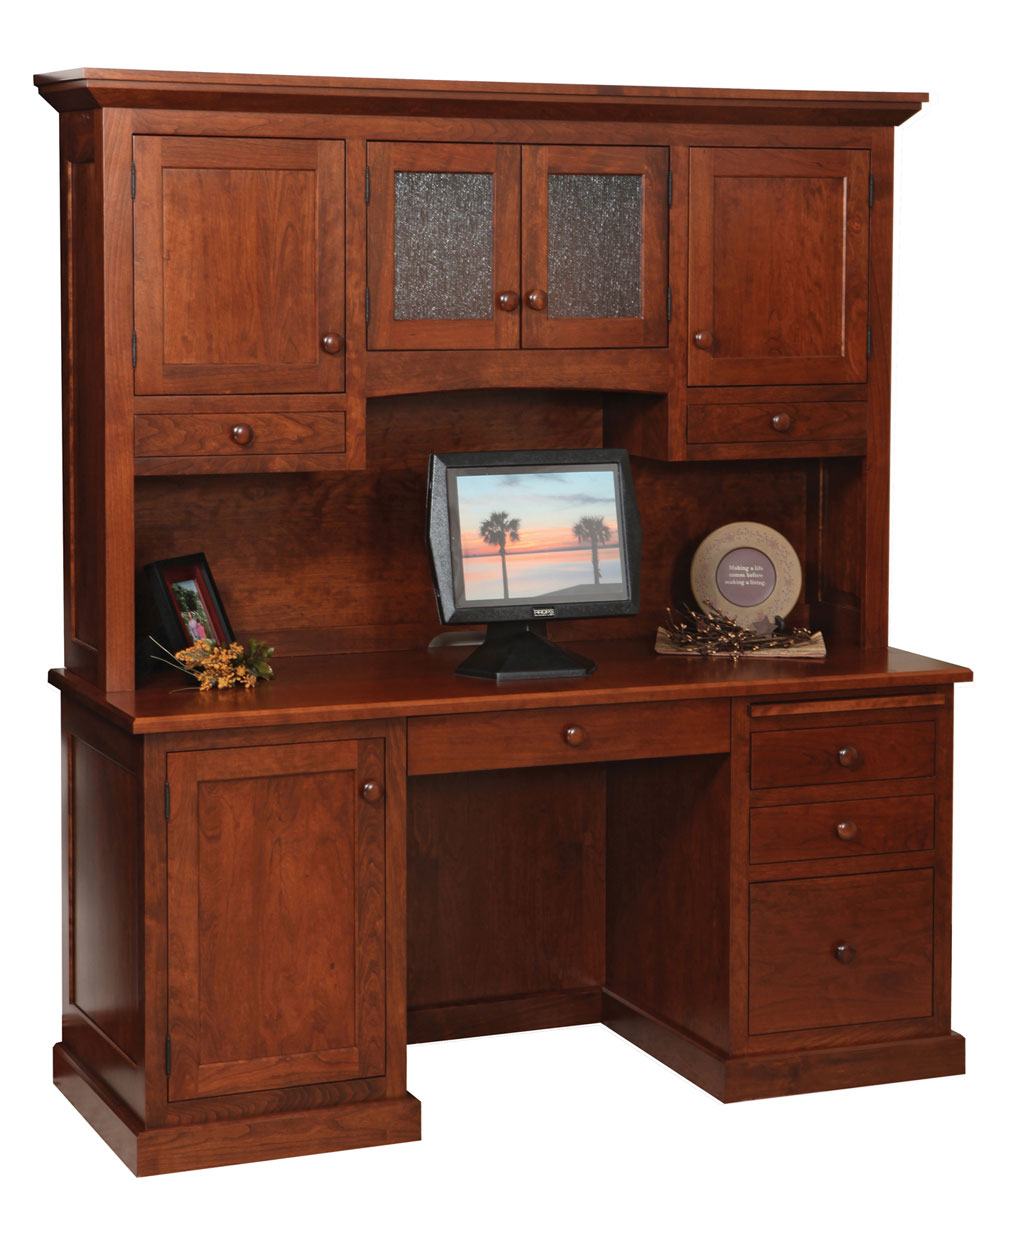 Homestead Credenza And Hutch